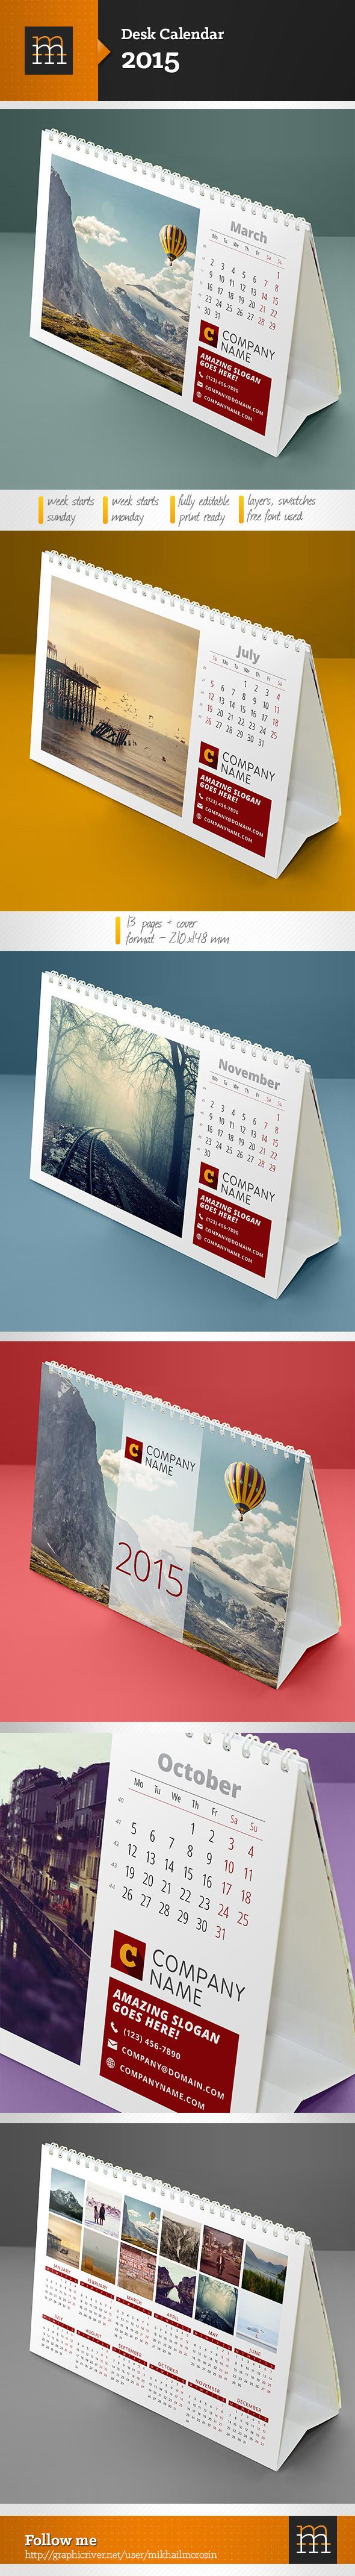 Desk Calendar 2015 on Behance